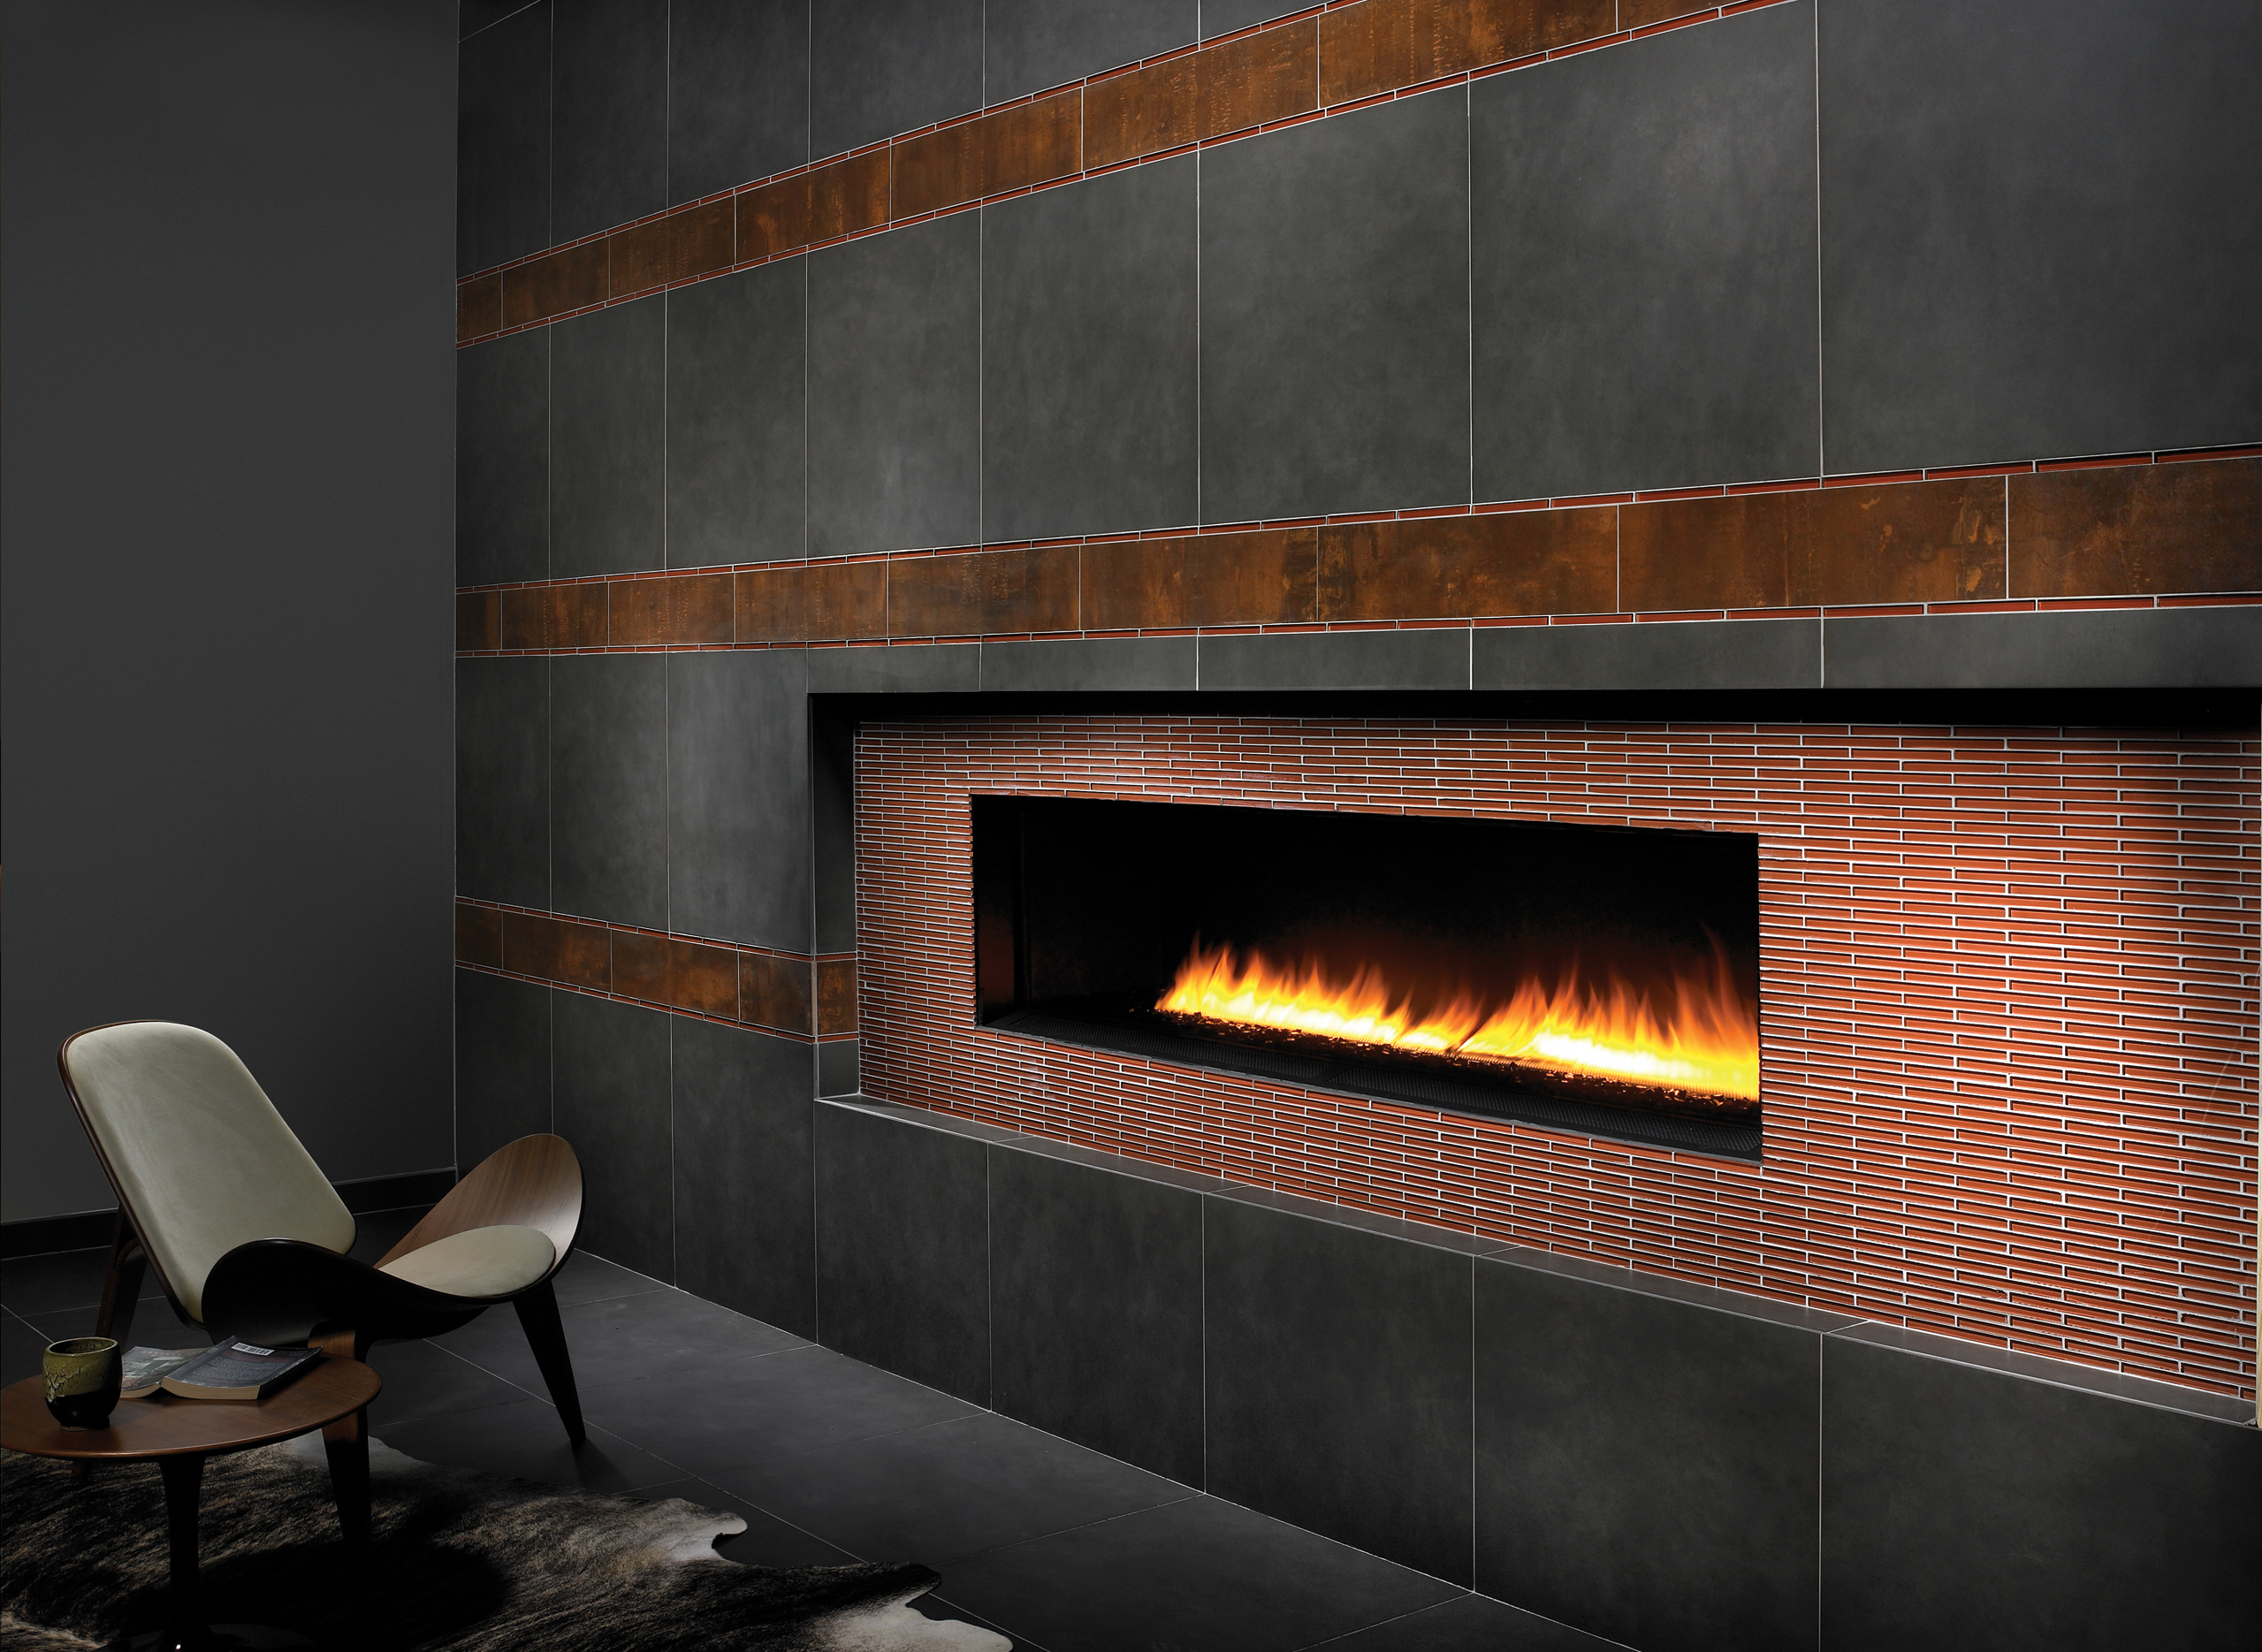 Spark Fireplaces Custom Tile Fireplace Feature Alpentile Glass Tile Pools